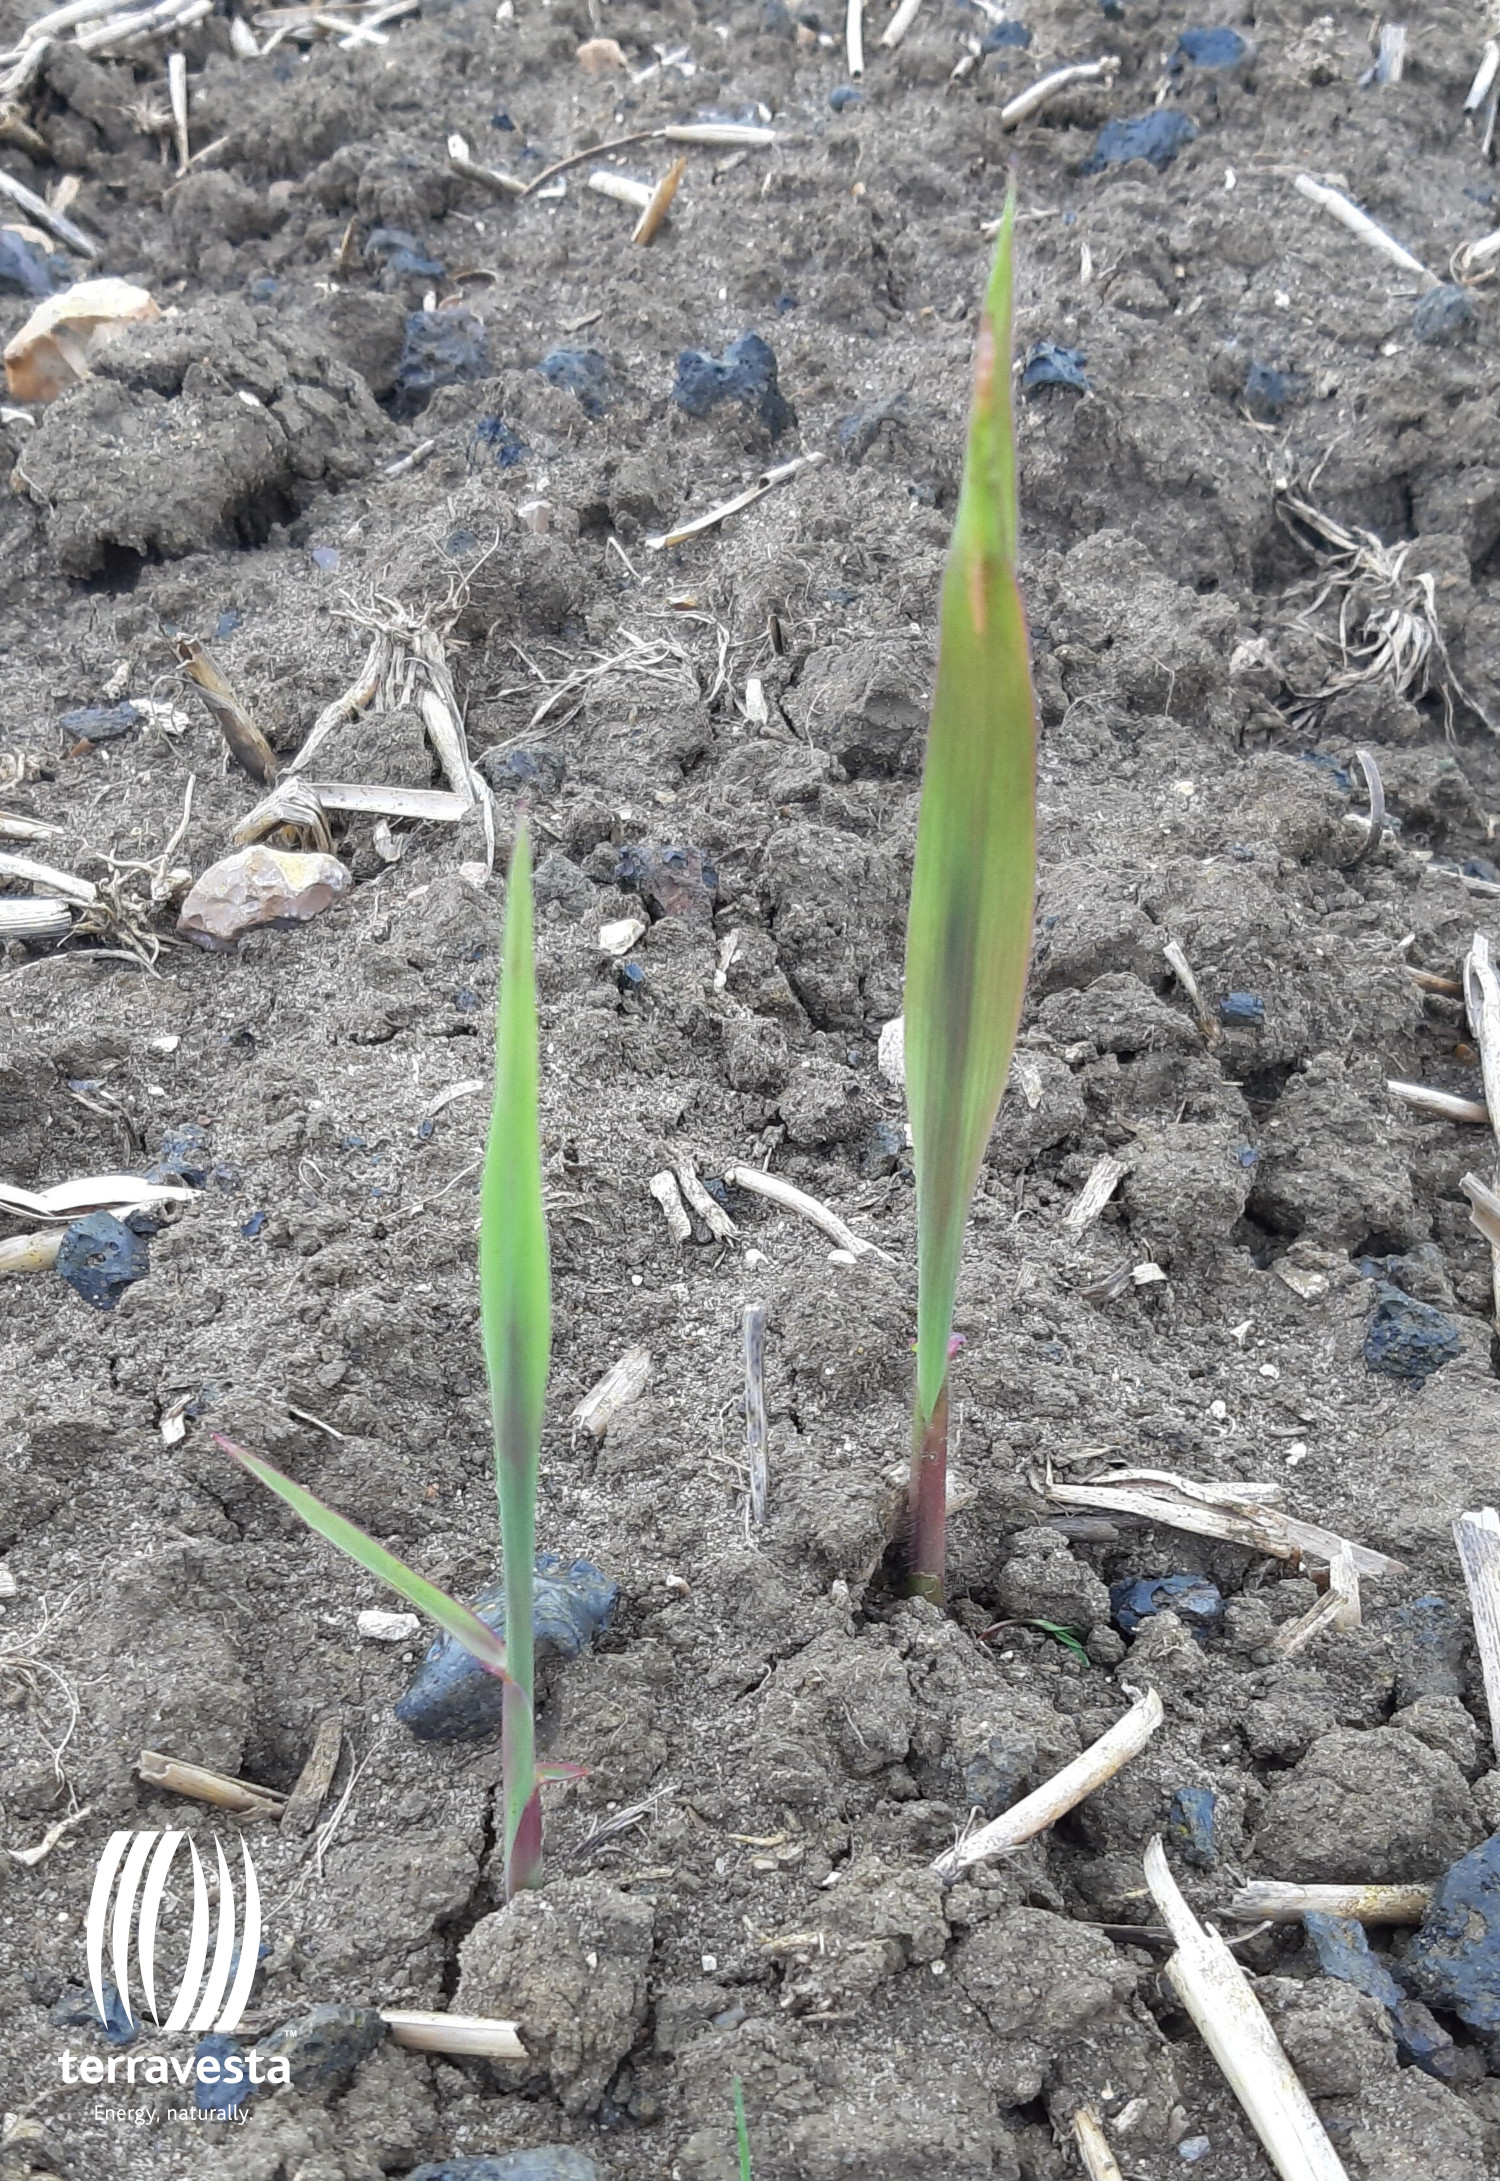 Newly Emerging Miscanthus Stems